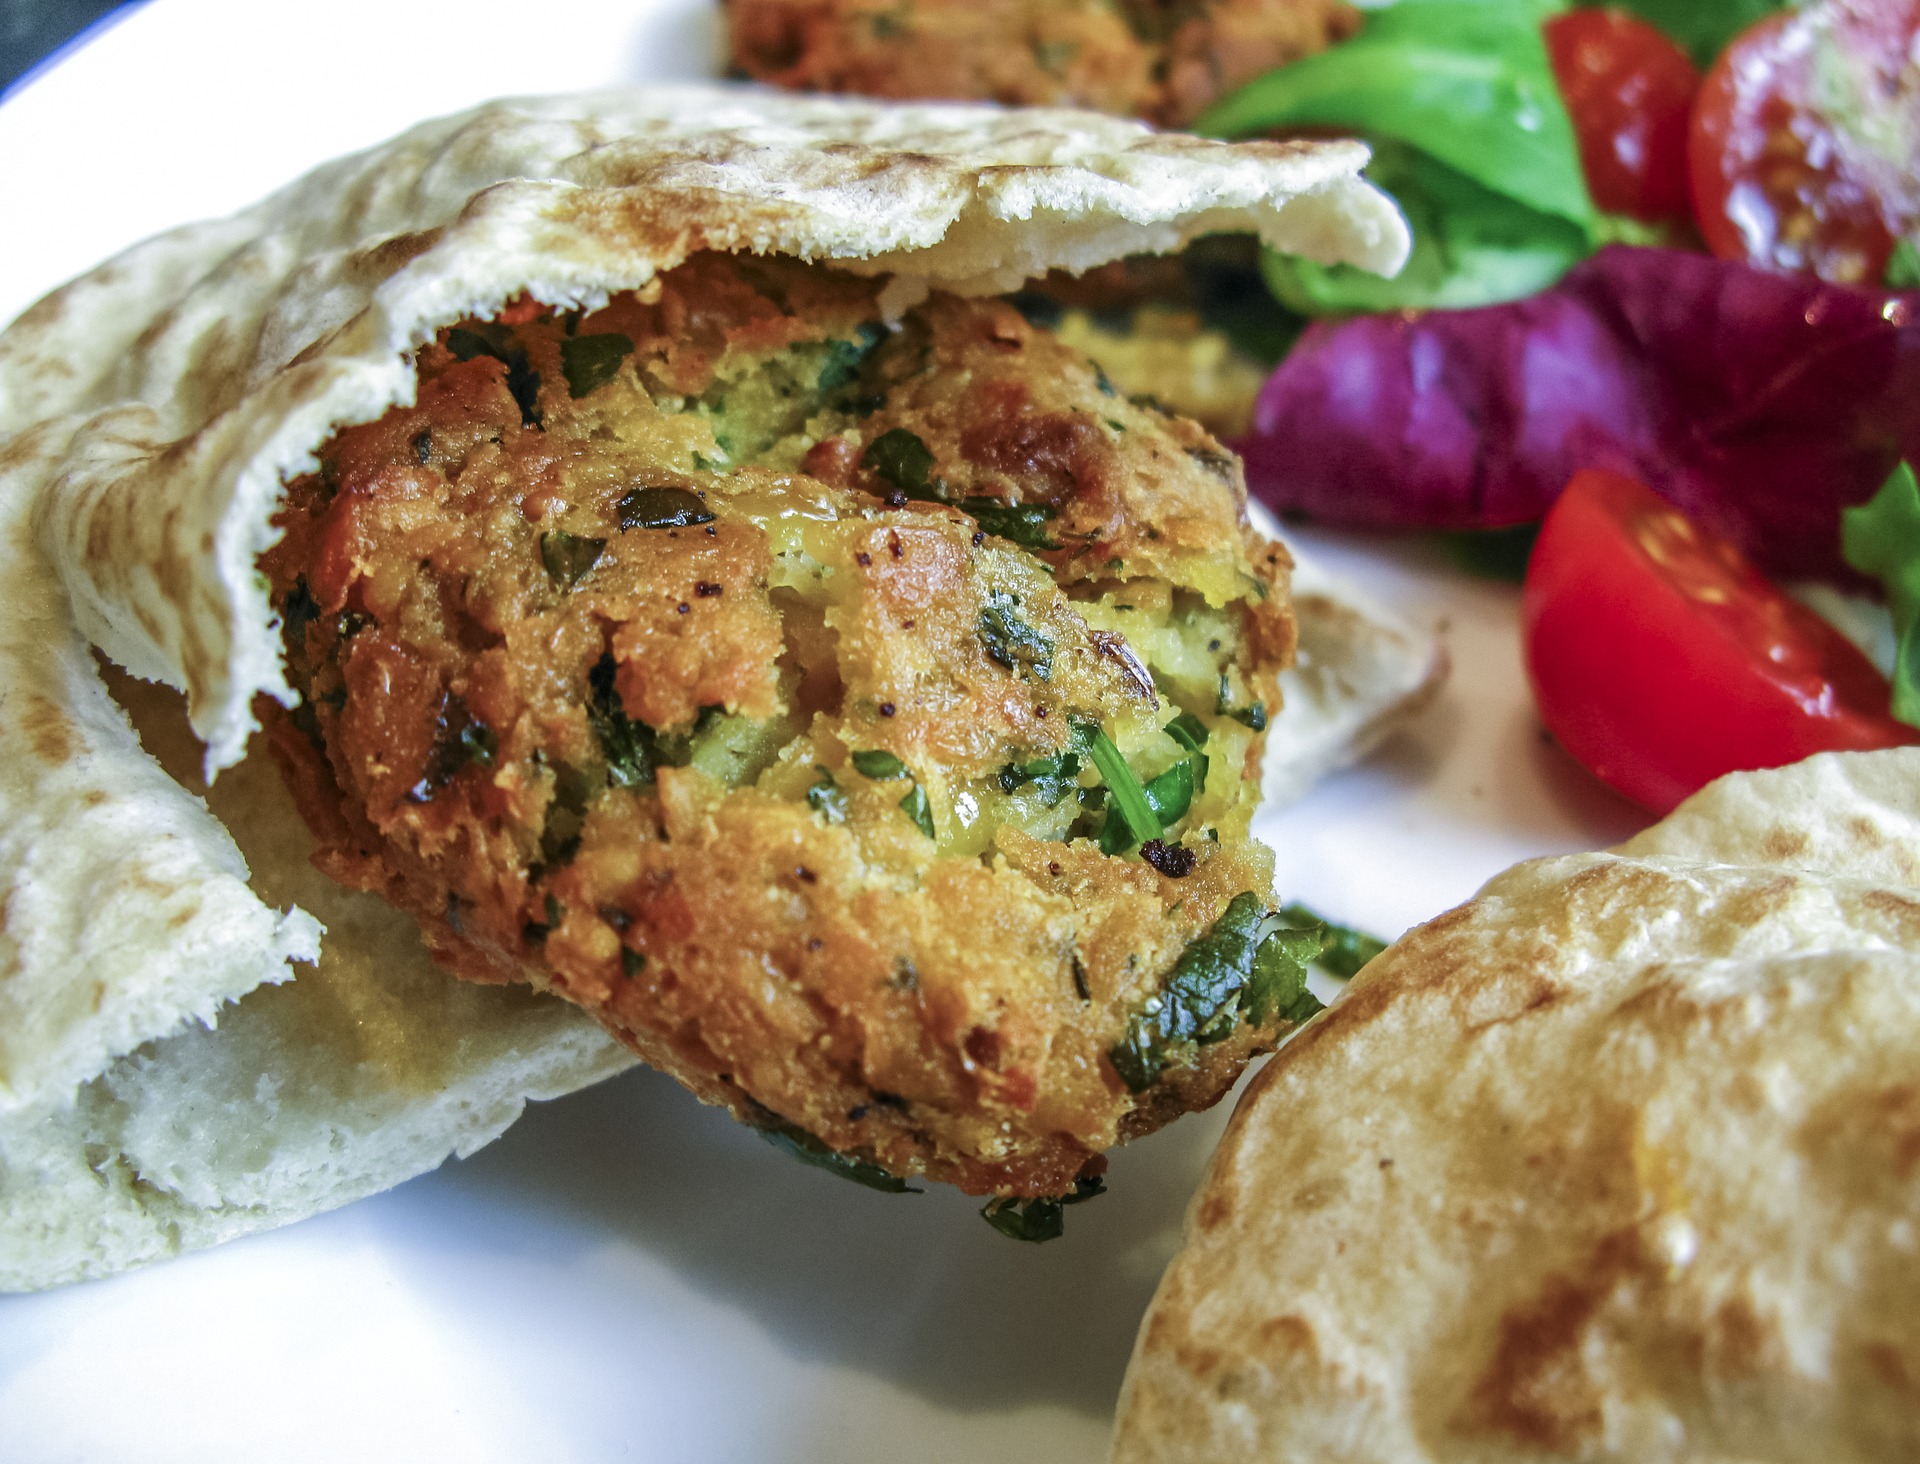 Falafel photo by Riopix Pixabay License Free for commercial use.No attribution required.